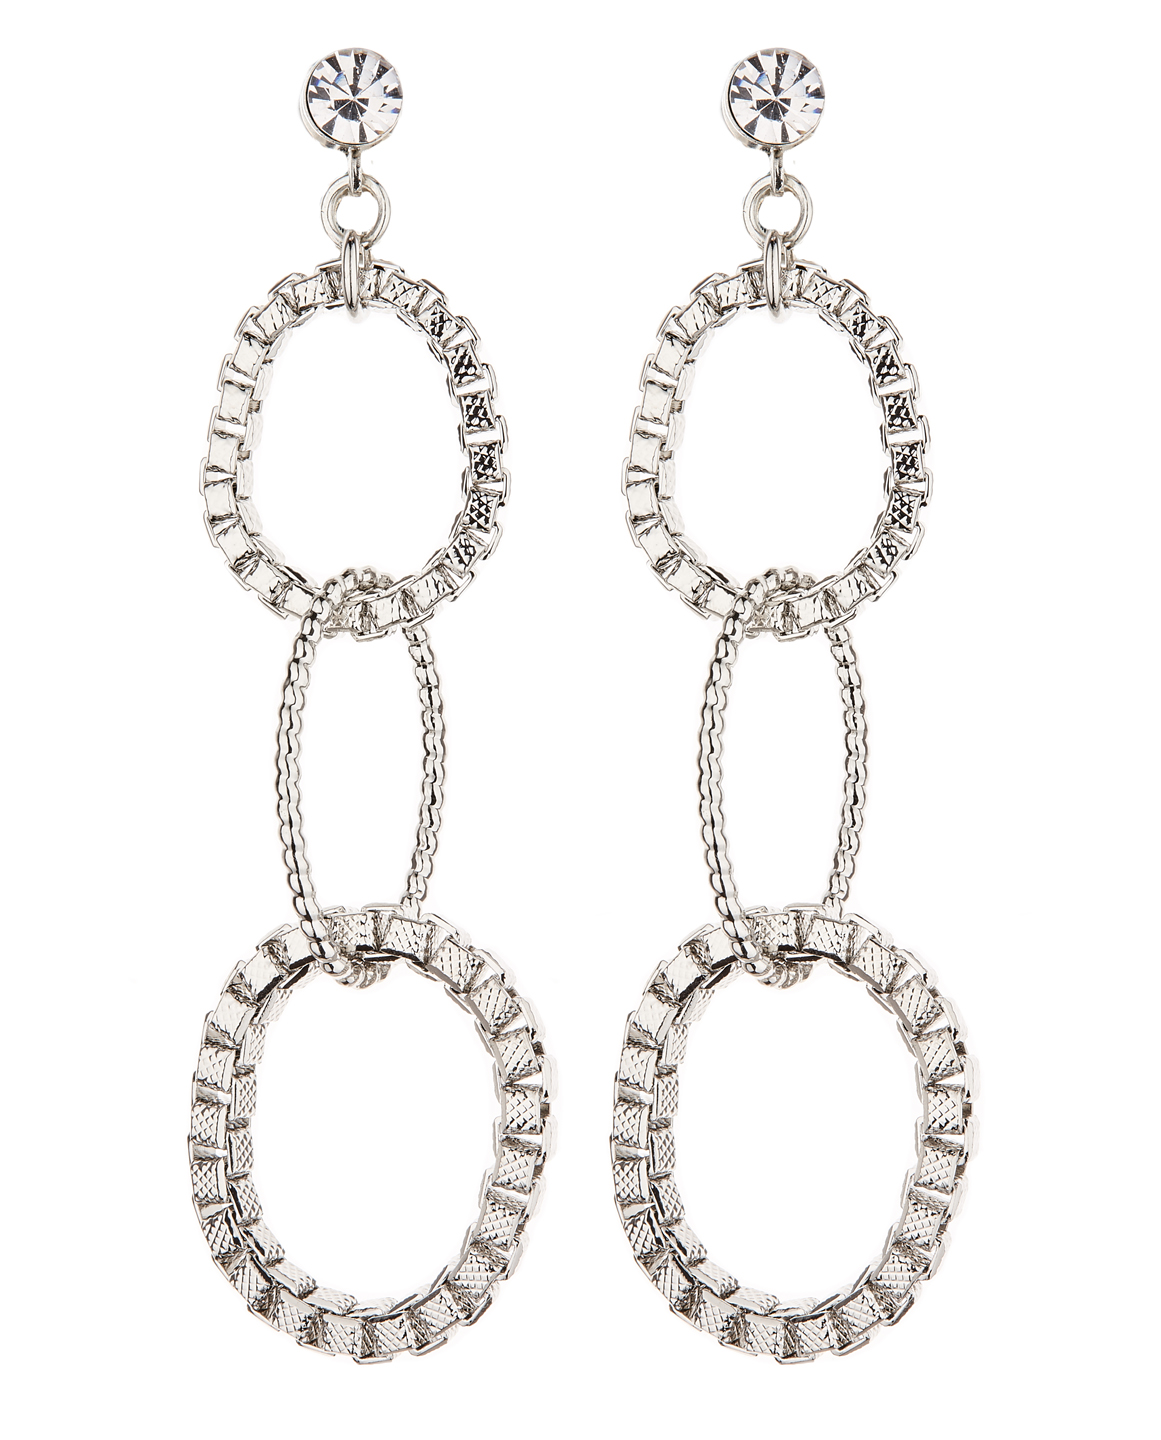 Clip On Earrings - Kaiya S - silver drop earring with three linked rings